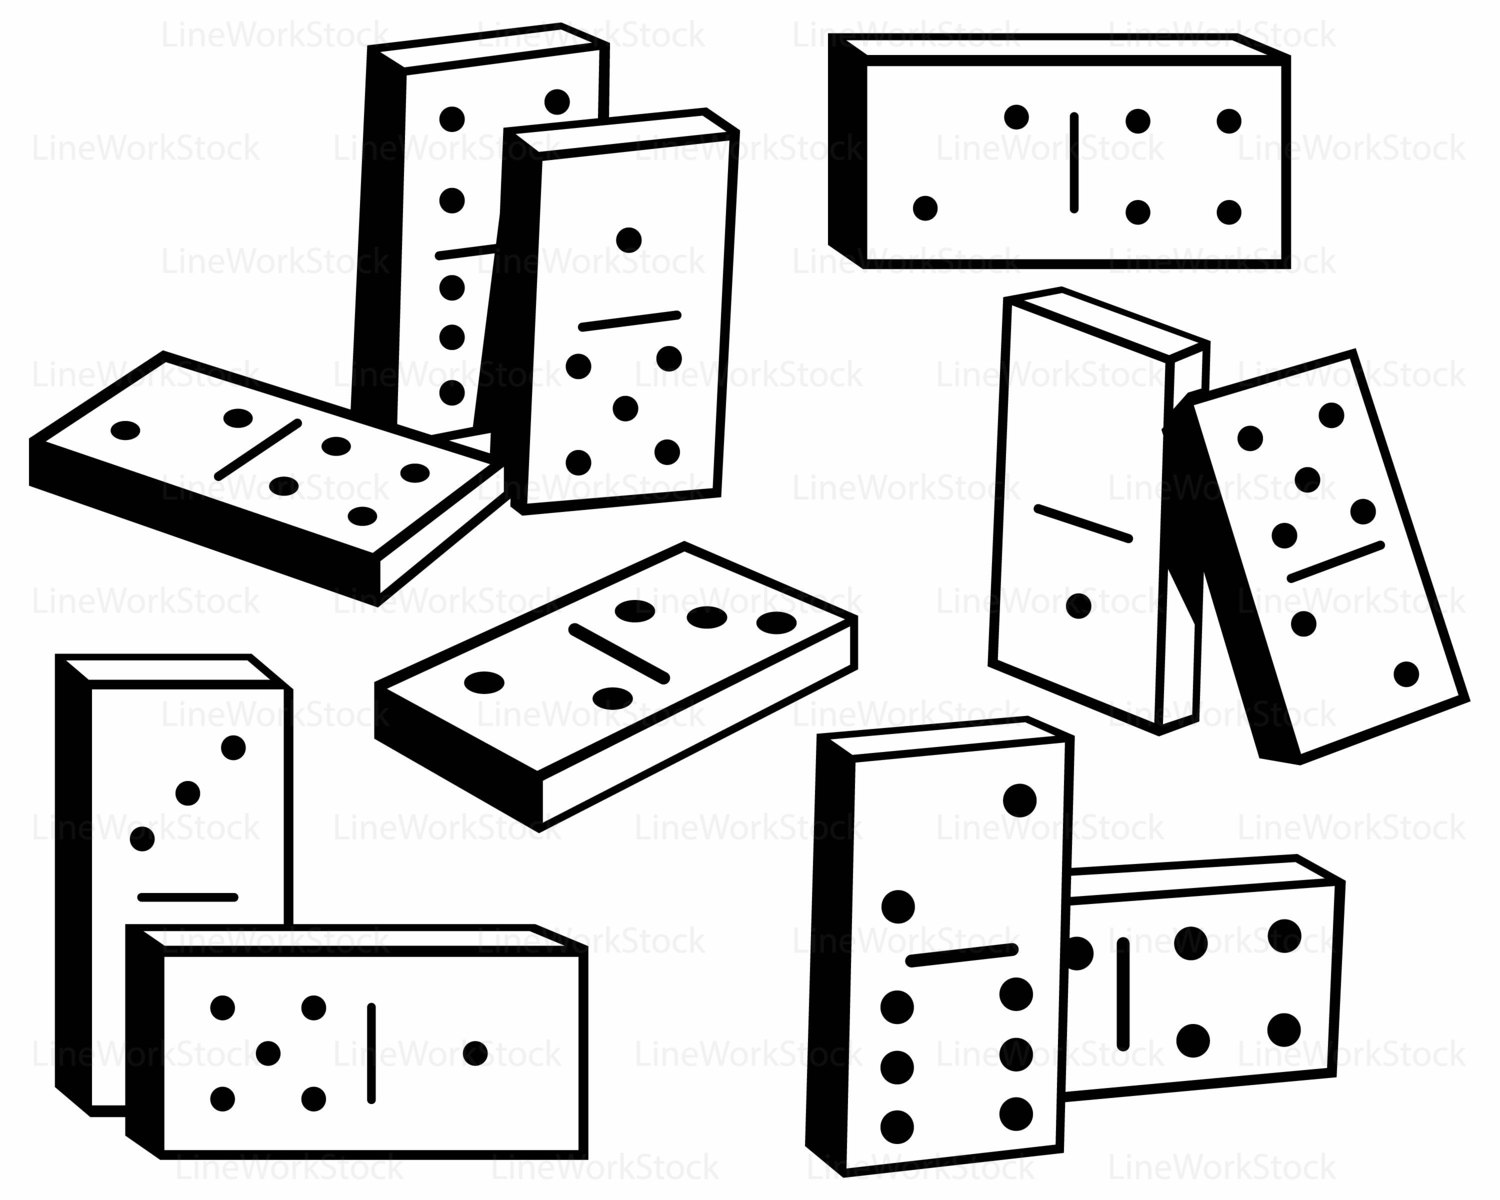 Domino clipart. Dominoes svg silhouette this